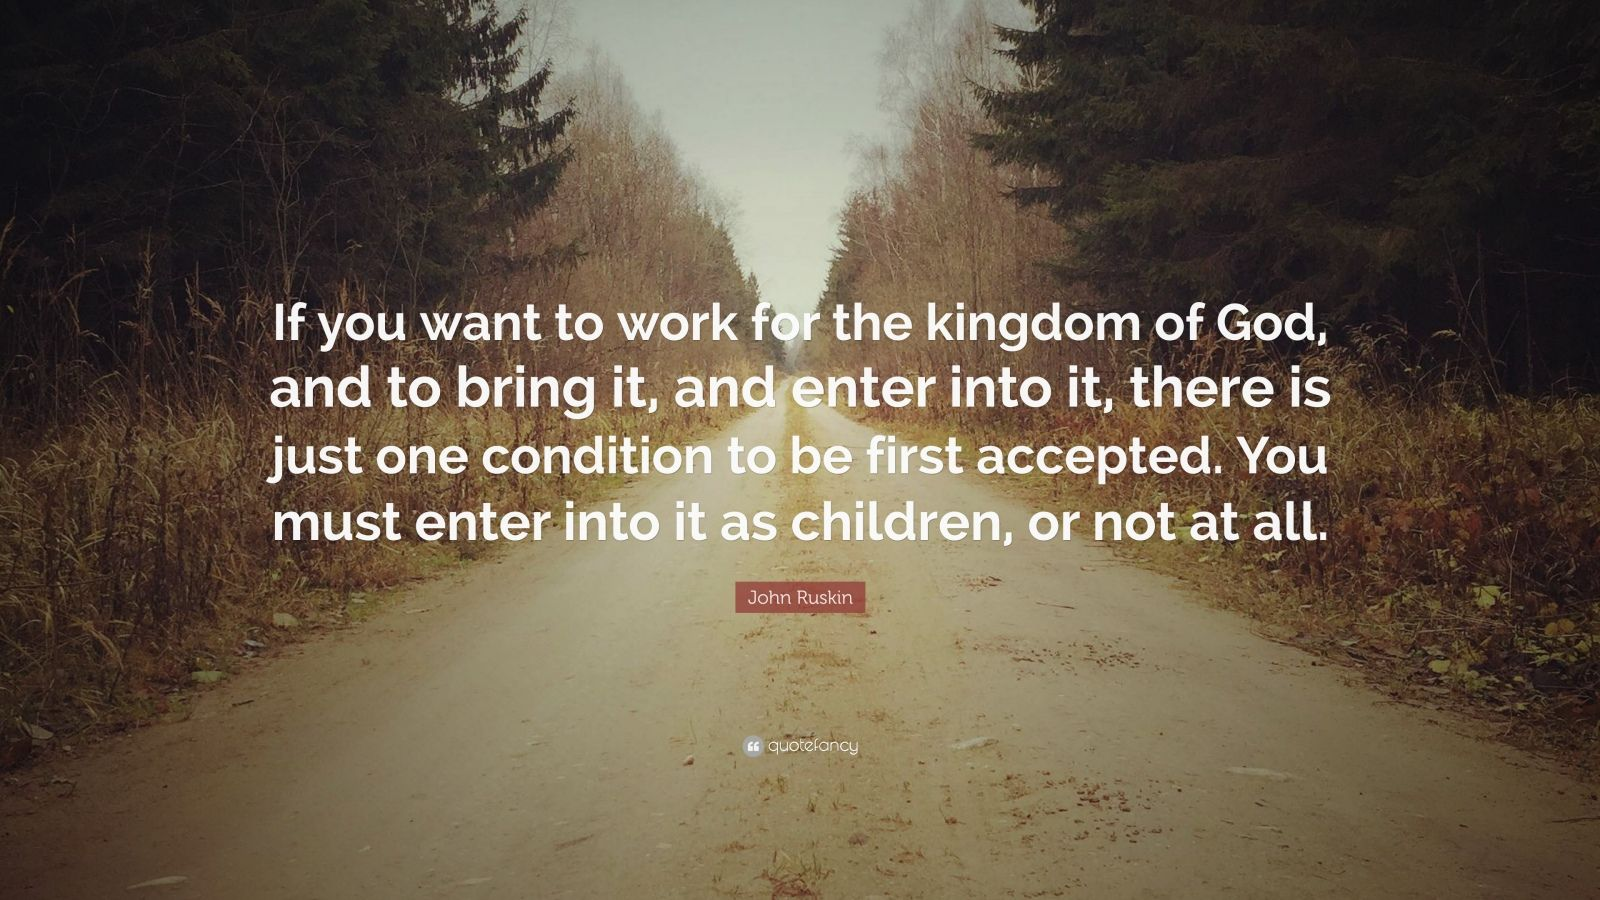 """John Ruskin Quote: """"If you want to work for the kingdom of God, and to bring it, and enter into it, there is just one condition to be first accepted. You must enter into it as children, or not at all."""""""